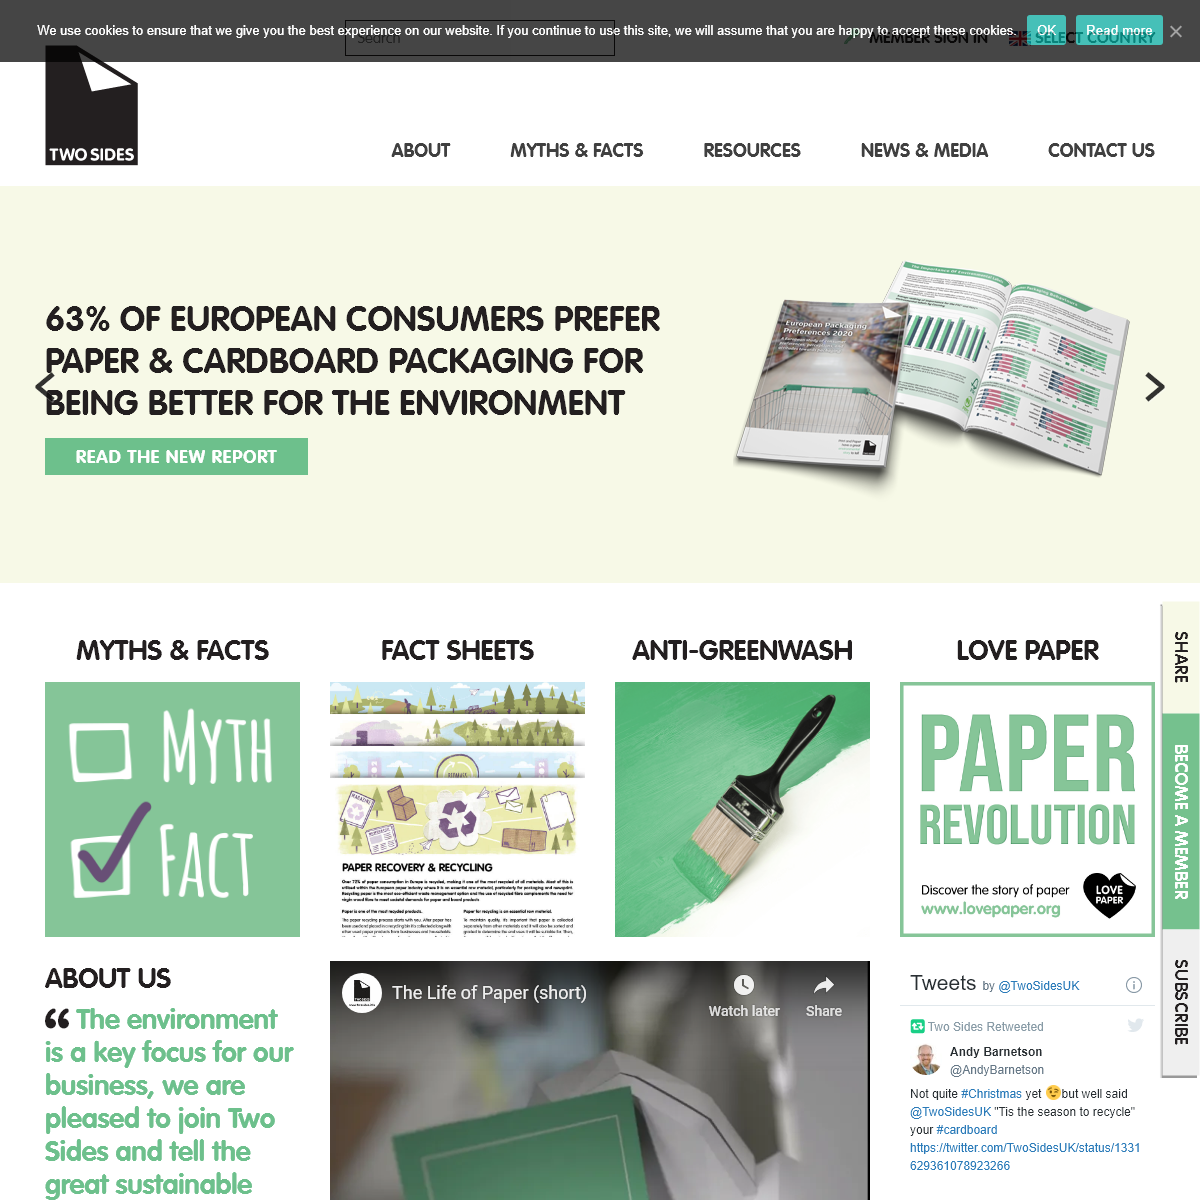 Two Sides - Start telling the sustainable story of print, paper and paper packaging